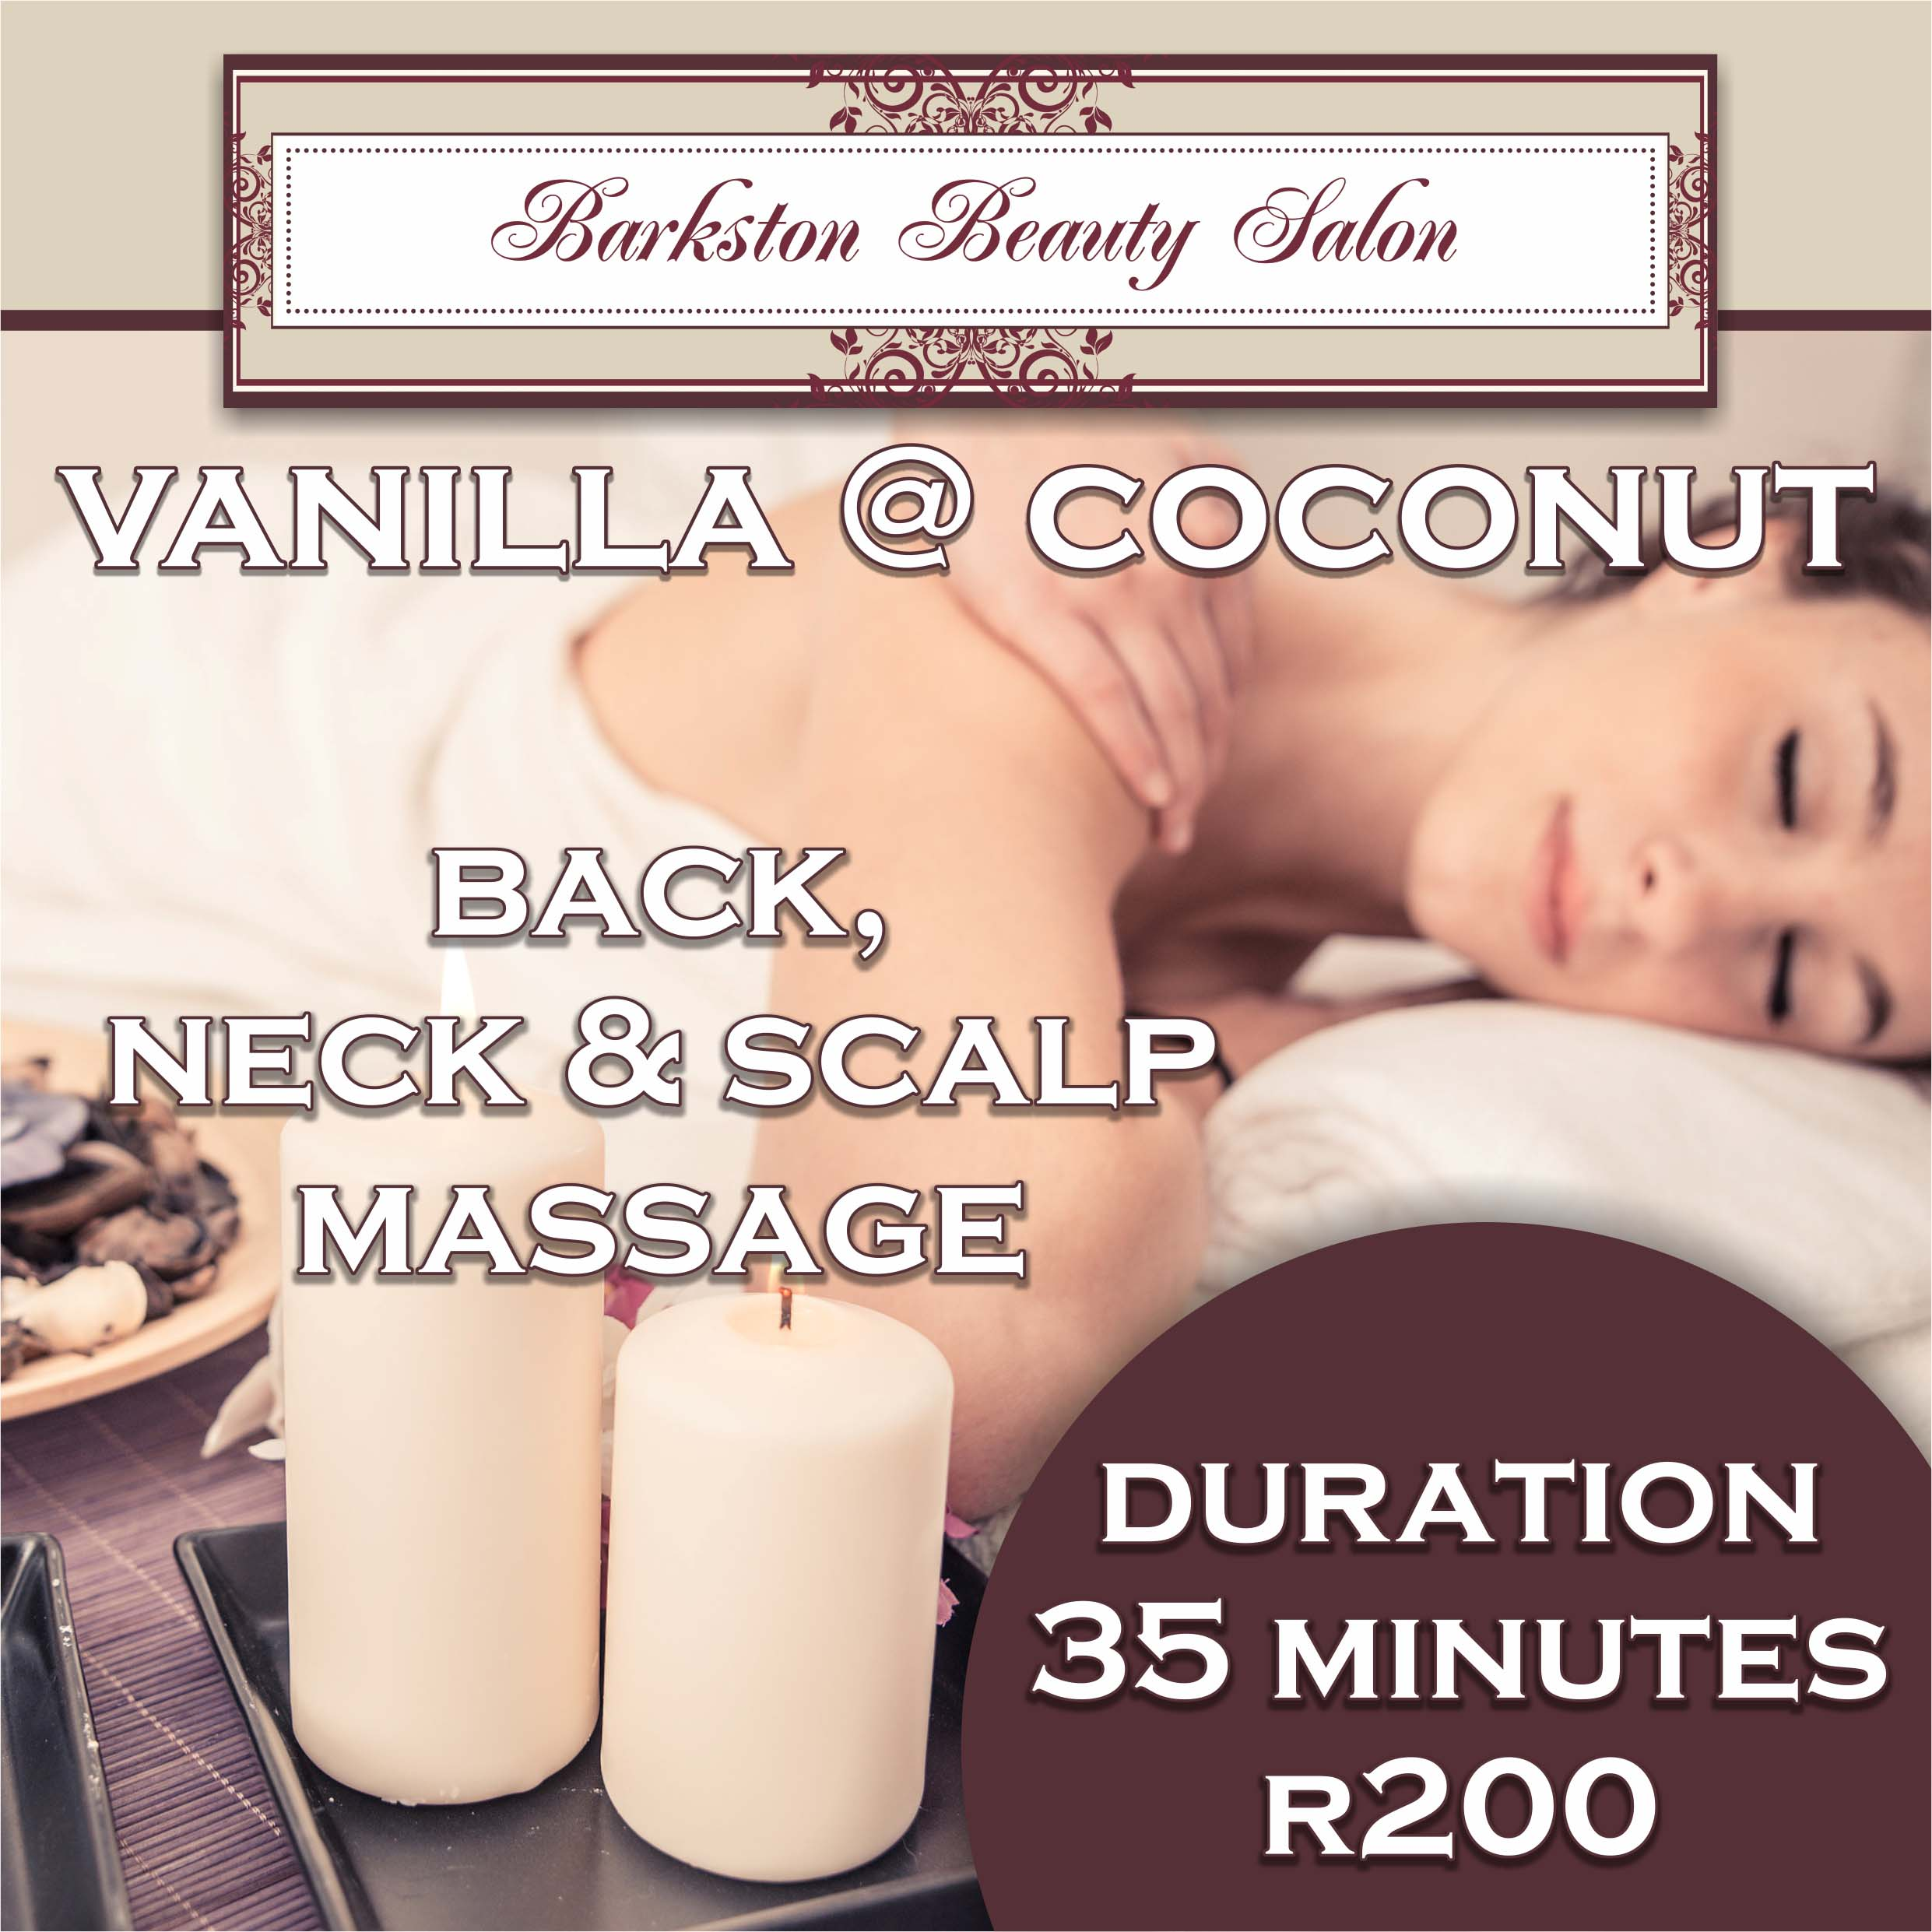 images/Barkston Beauty Salon Facebook Ad - Vanilla @ Coconut.jpg